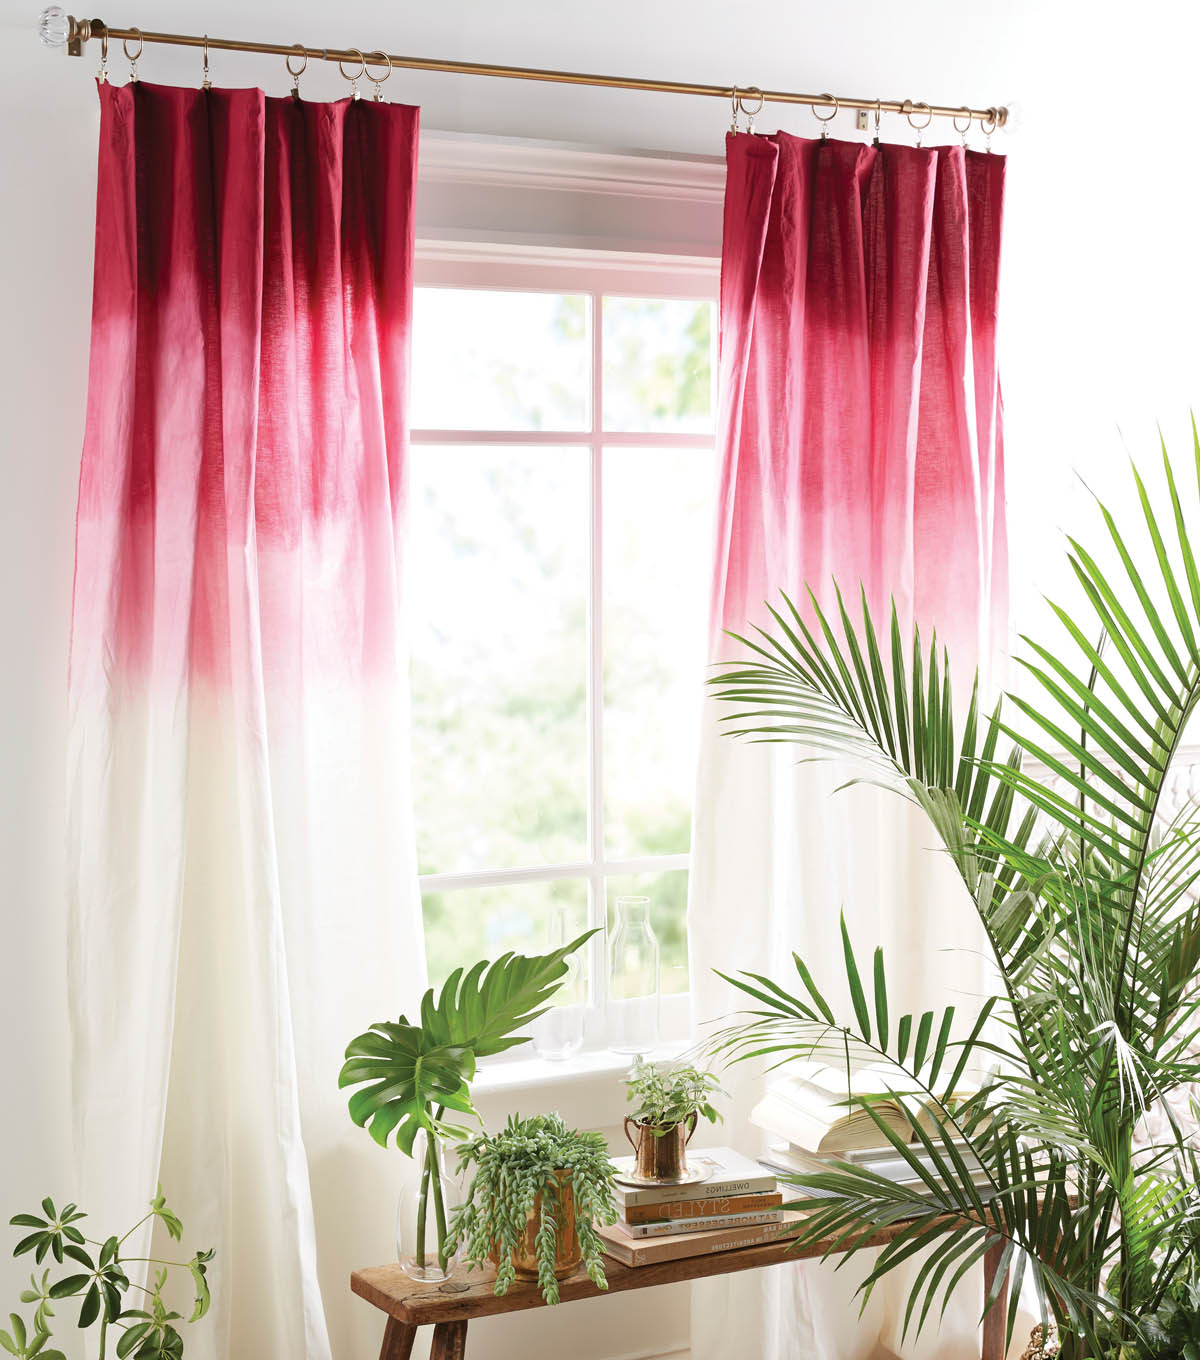 Joann Intended For Preferred Ombre Embroidery Curtain Panels (View 4 of 20)